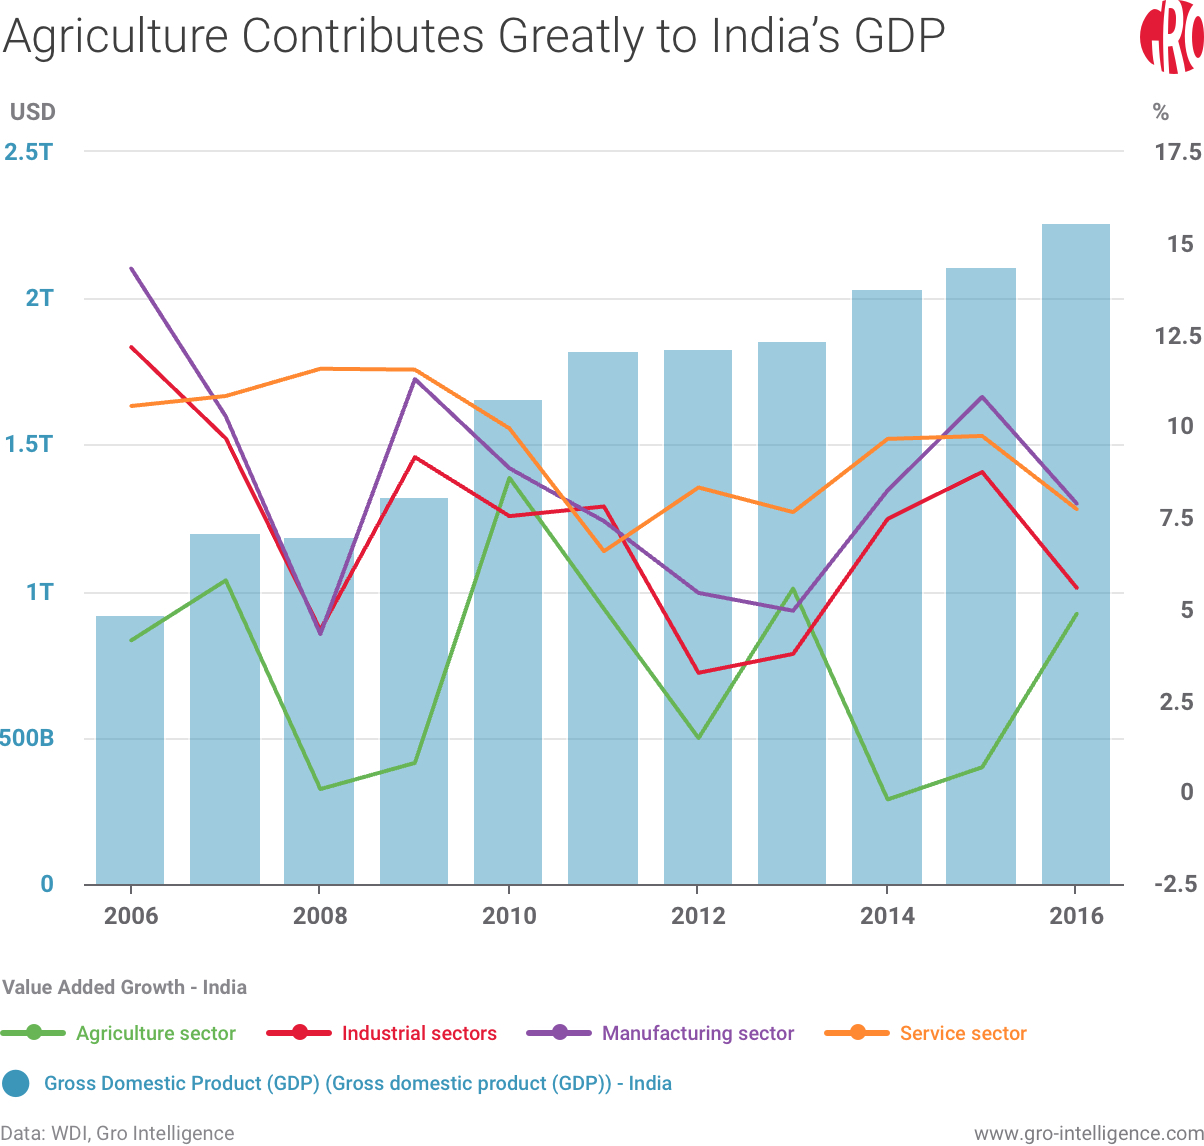 Agriculture Contributes Greatly to India's GDP